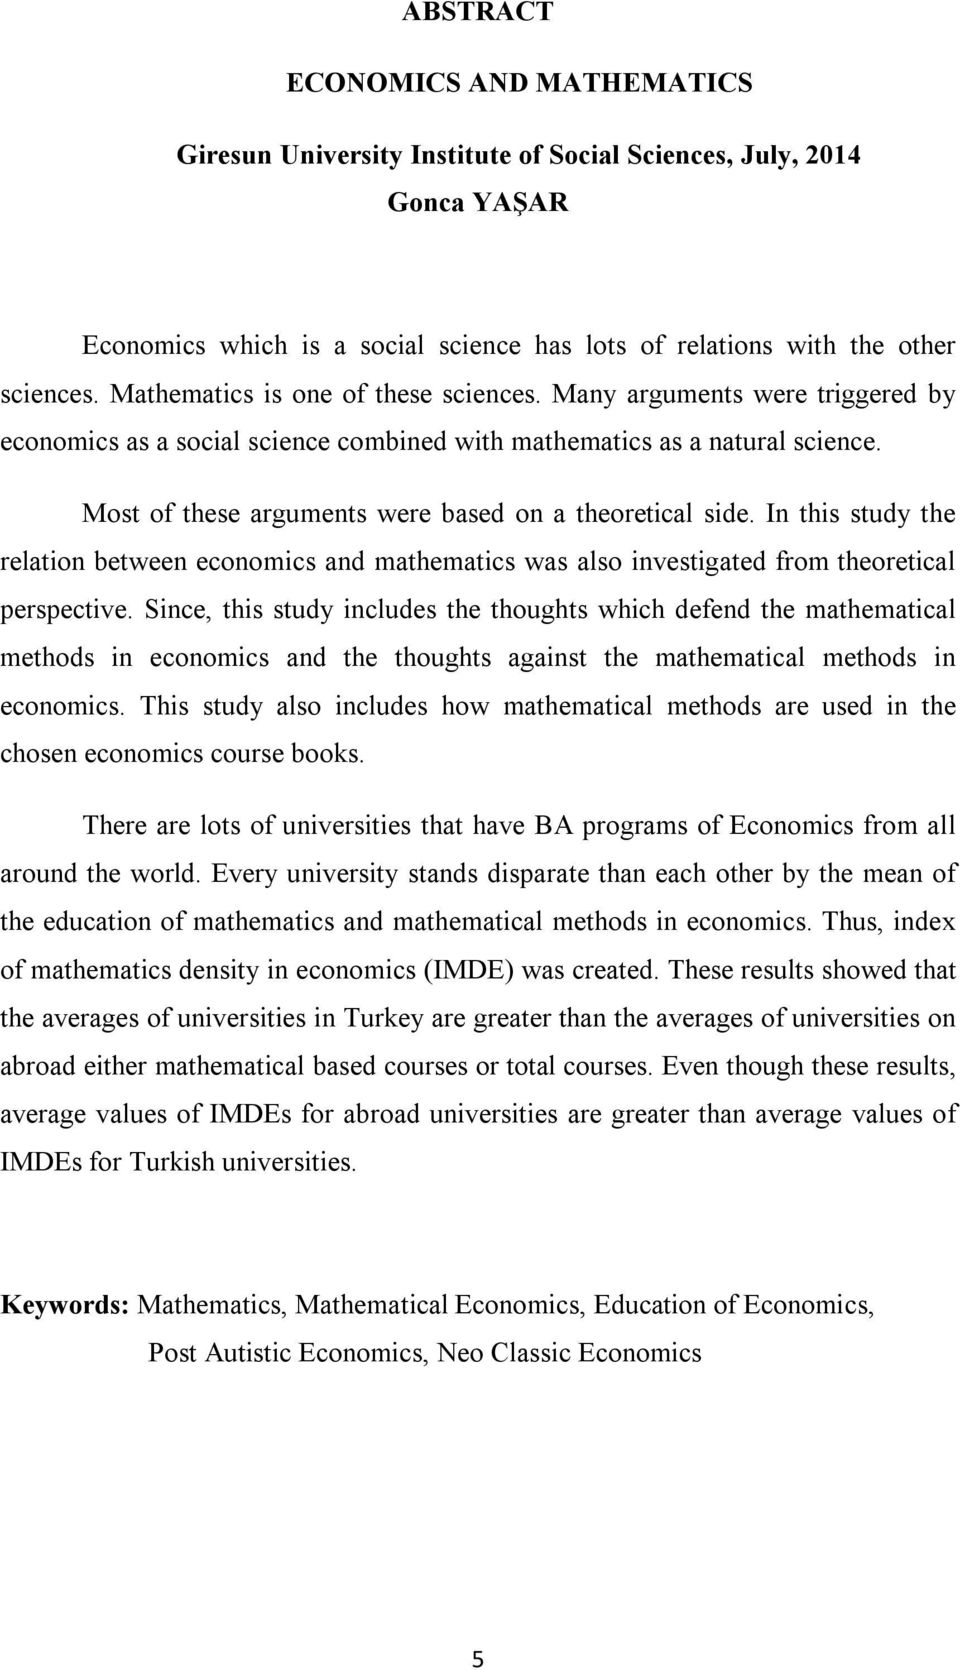 Most of these arguments were based on a theoretical side. In this study the relation between economics and mathematics was also investigated from theoretical perspective.